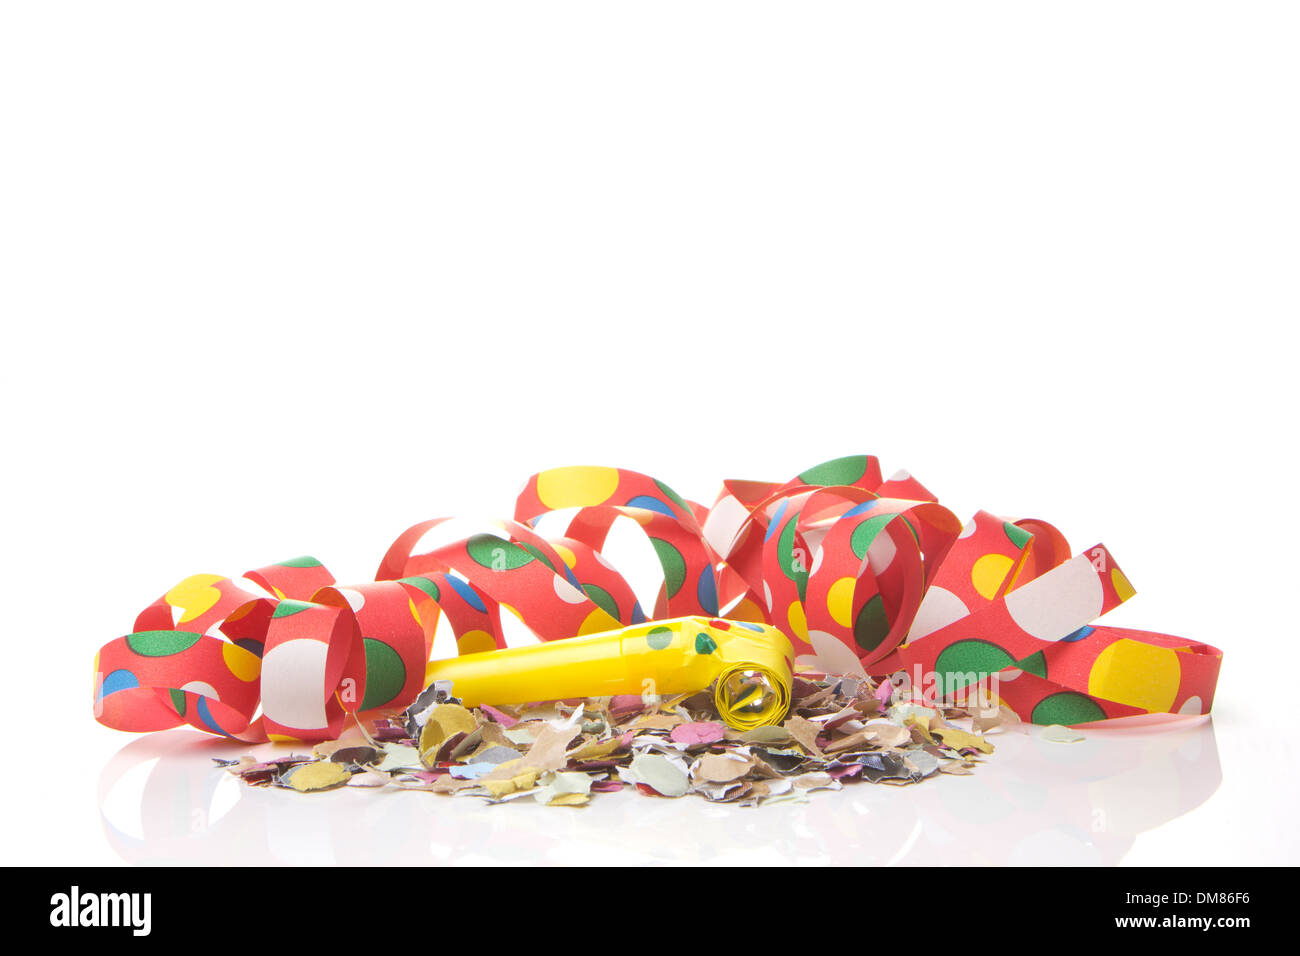 streamers and confetti as decoration for parties, sylvester with white background Stock Photo